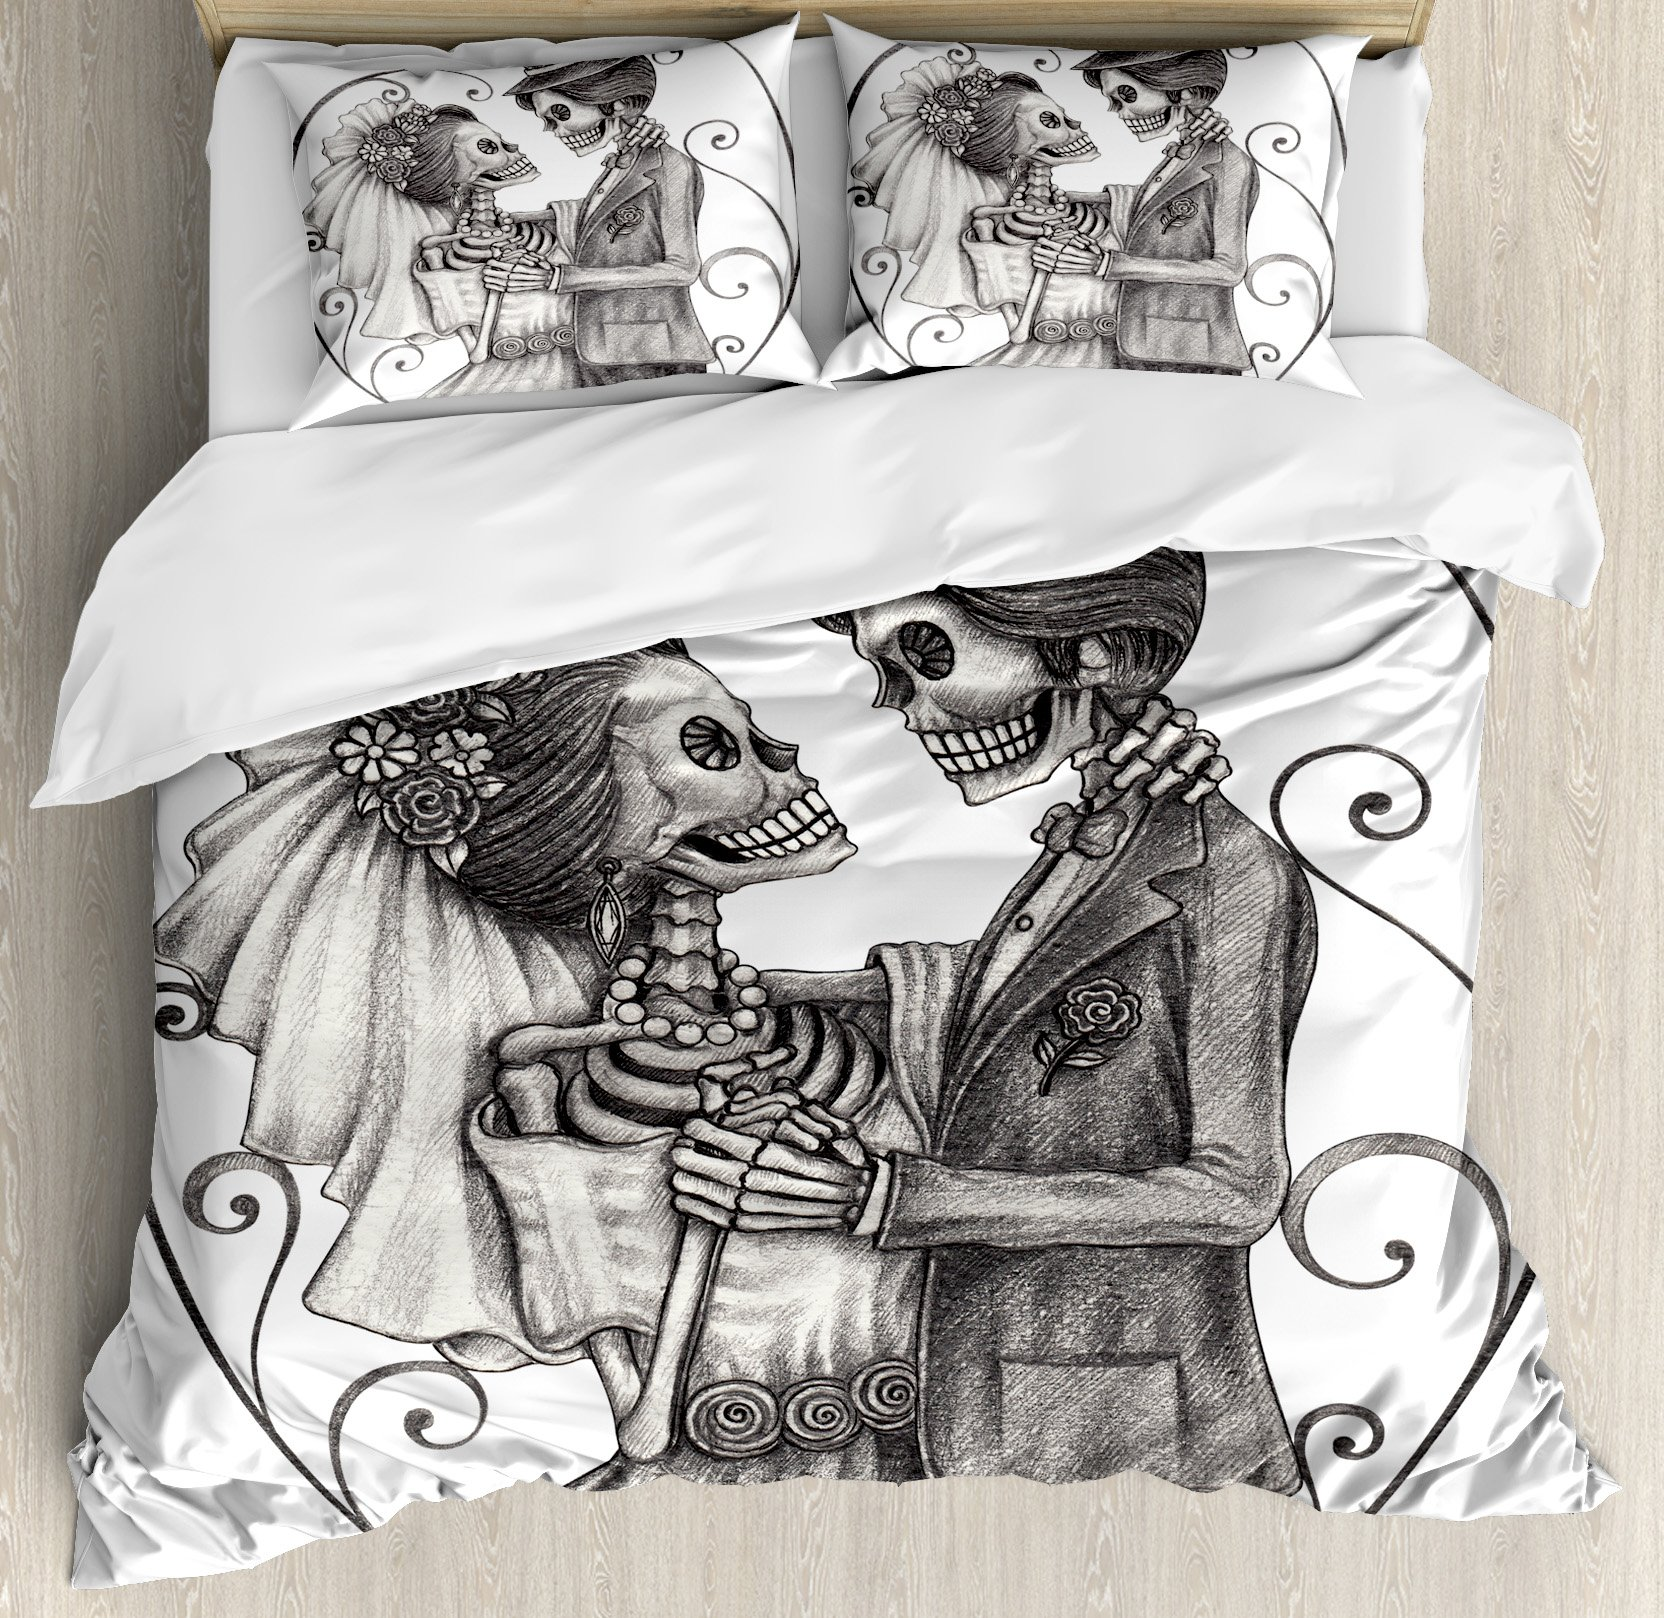 Ambesonne Day of The Dead Decor Duvet Cover Set, Love Valentine's Skull Skeleton Marriage Eternal Spanish Festive Art, 3 Piece Bedding Set with Pillow Shams, Queen/Full, Dimgrey and White